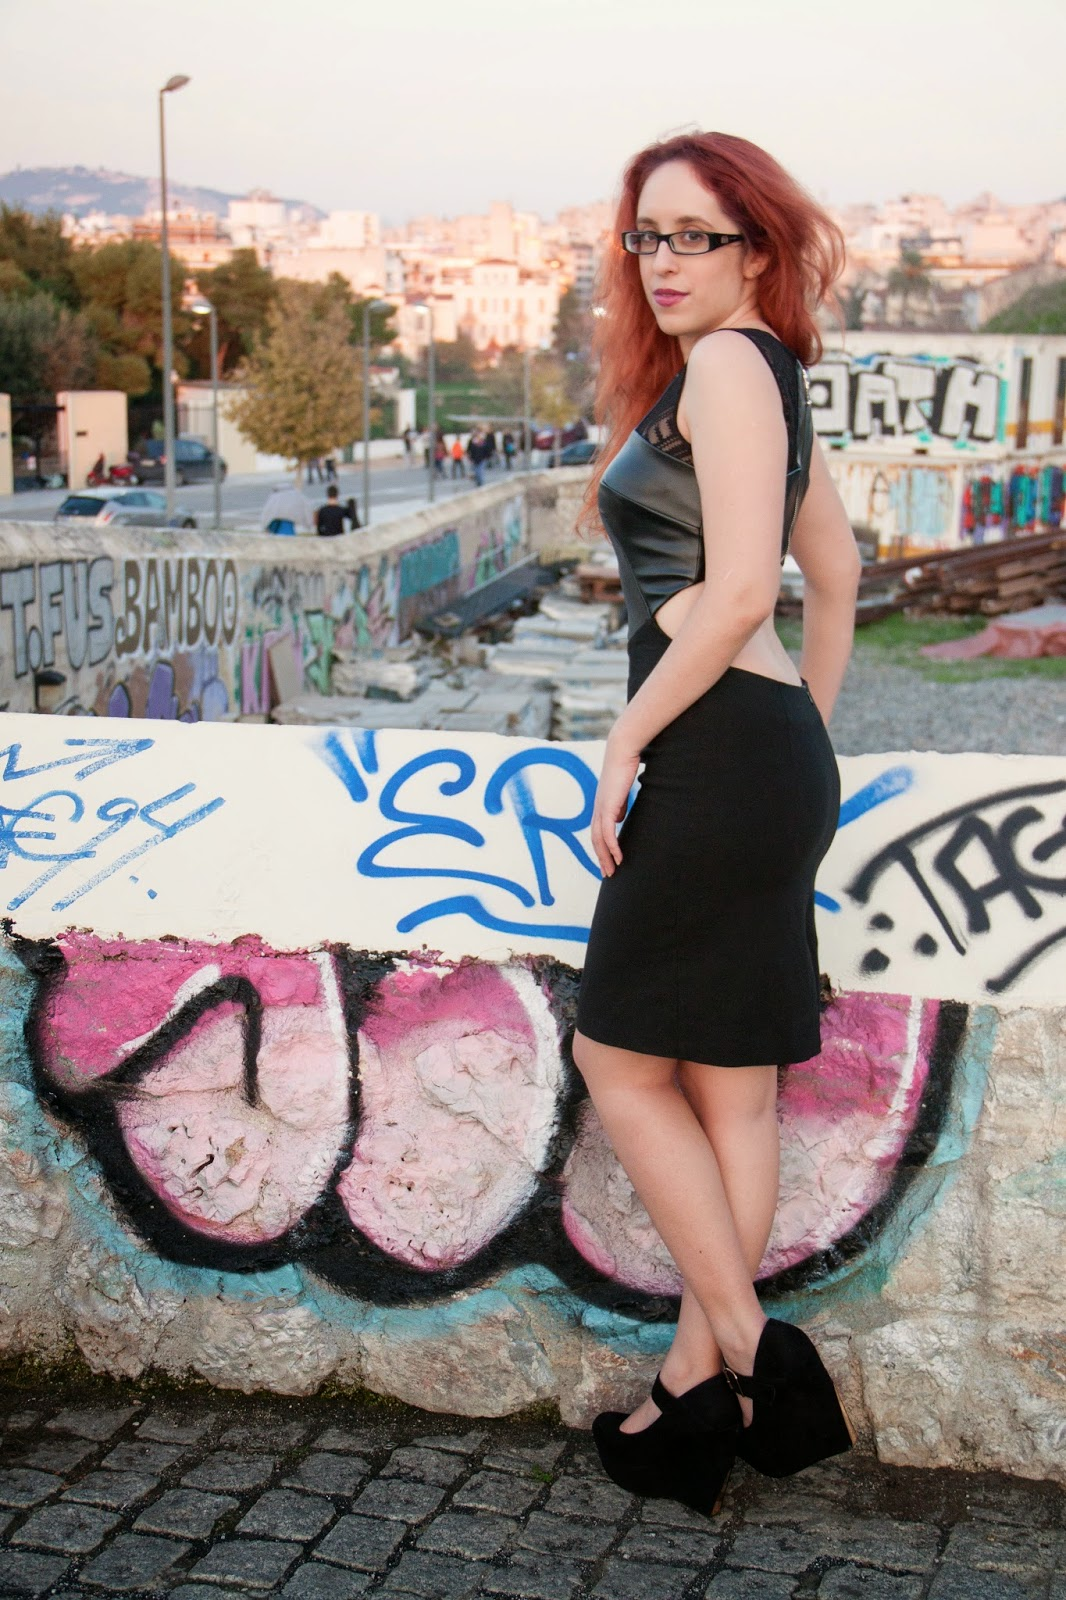 Anna, Keni, etailpr, hybrid, dress, backless, leather, lace, black, redhead, spotlights on the redhead, model, blogger, sexy, review, shopping, glasses